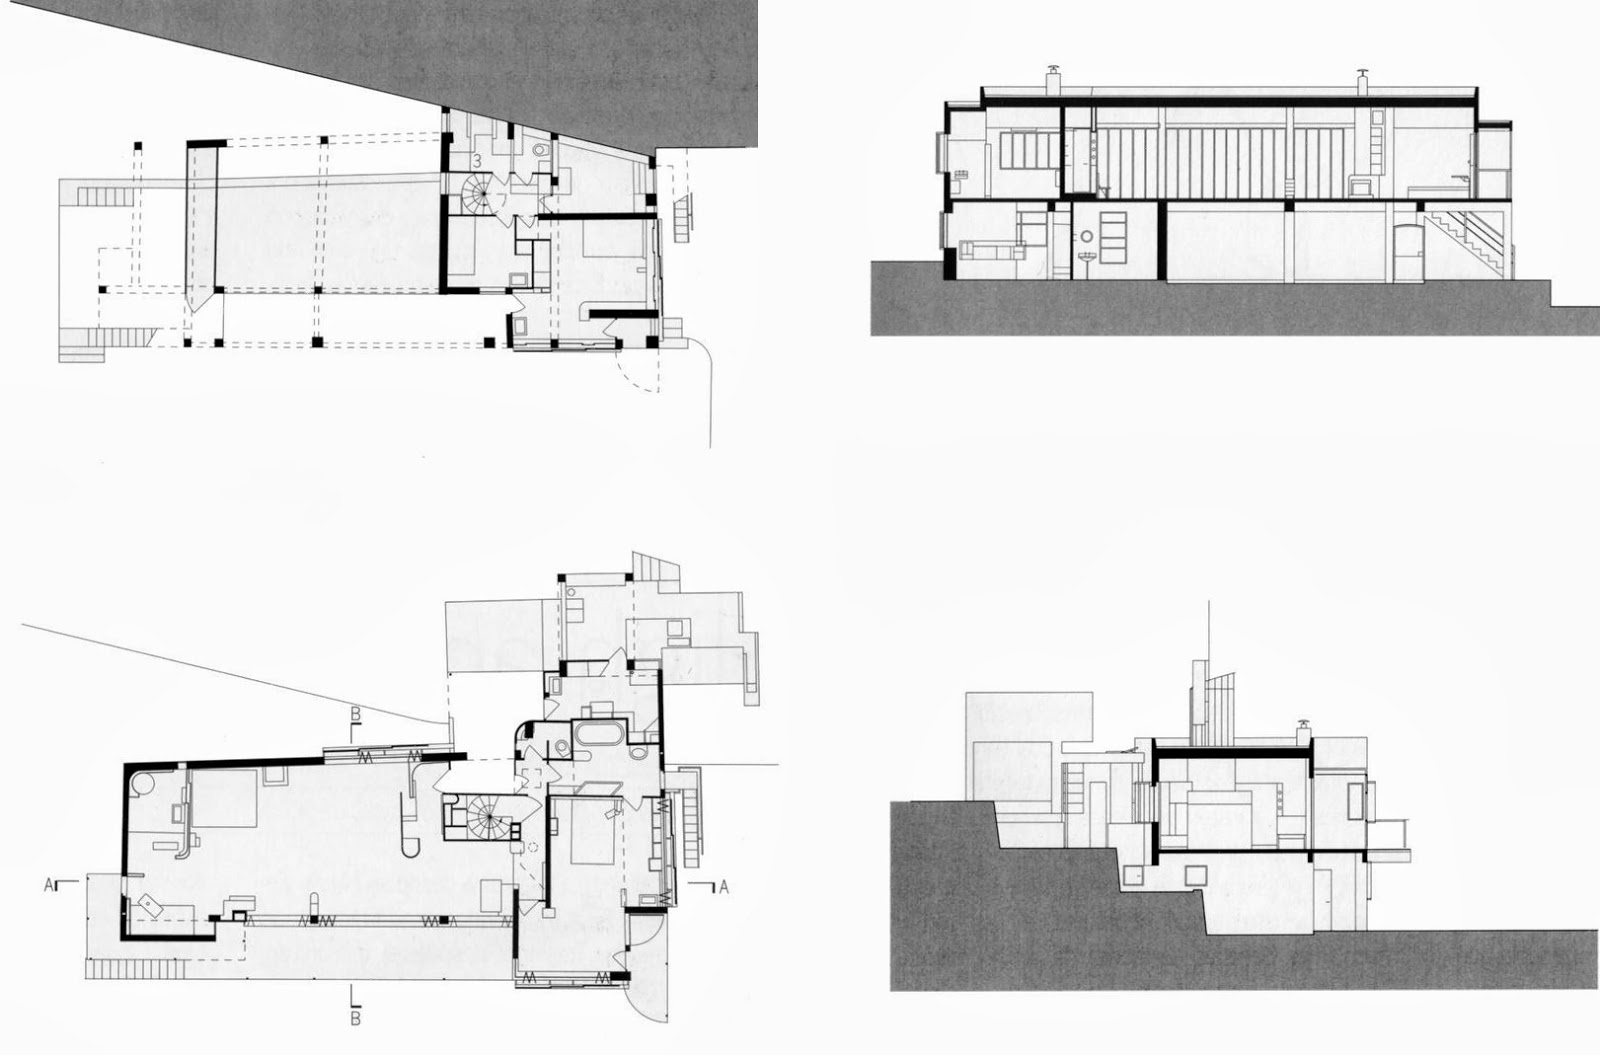 eileen gray e1027 floor plan - photo #12